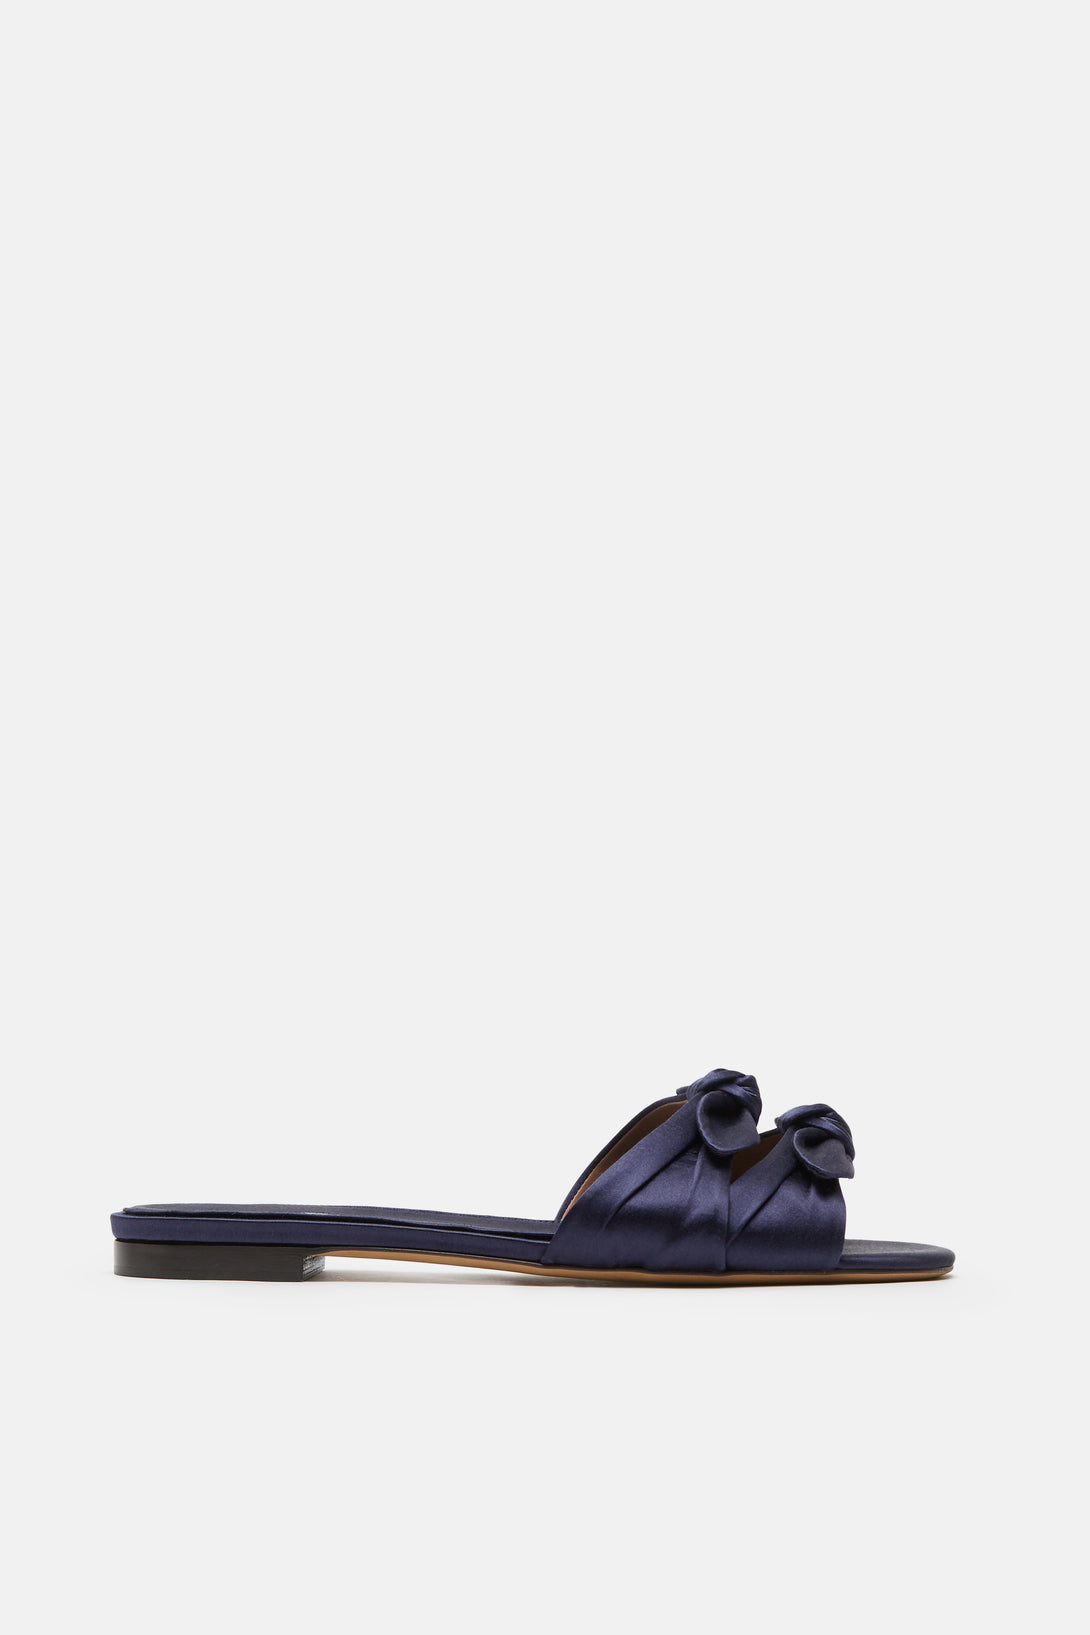 Cleo Double Bow Satin Flat - Navy